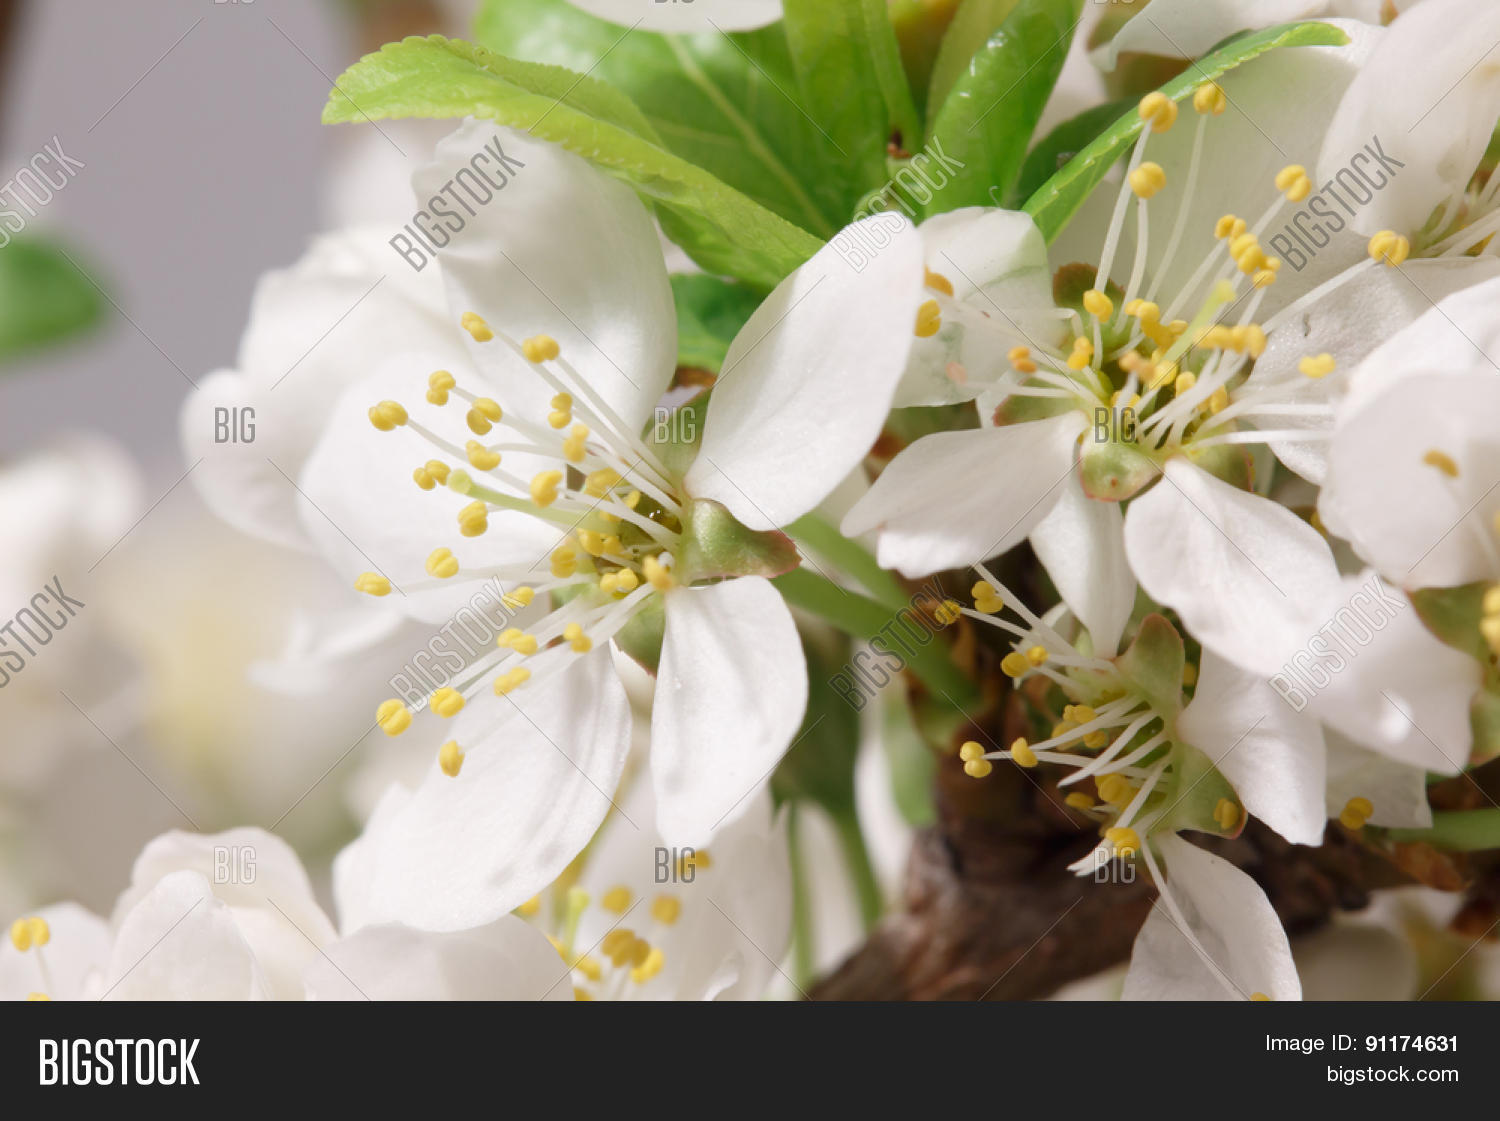 Mayflower Flower Image Photo Free Trial Bigstock